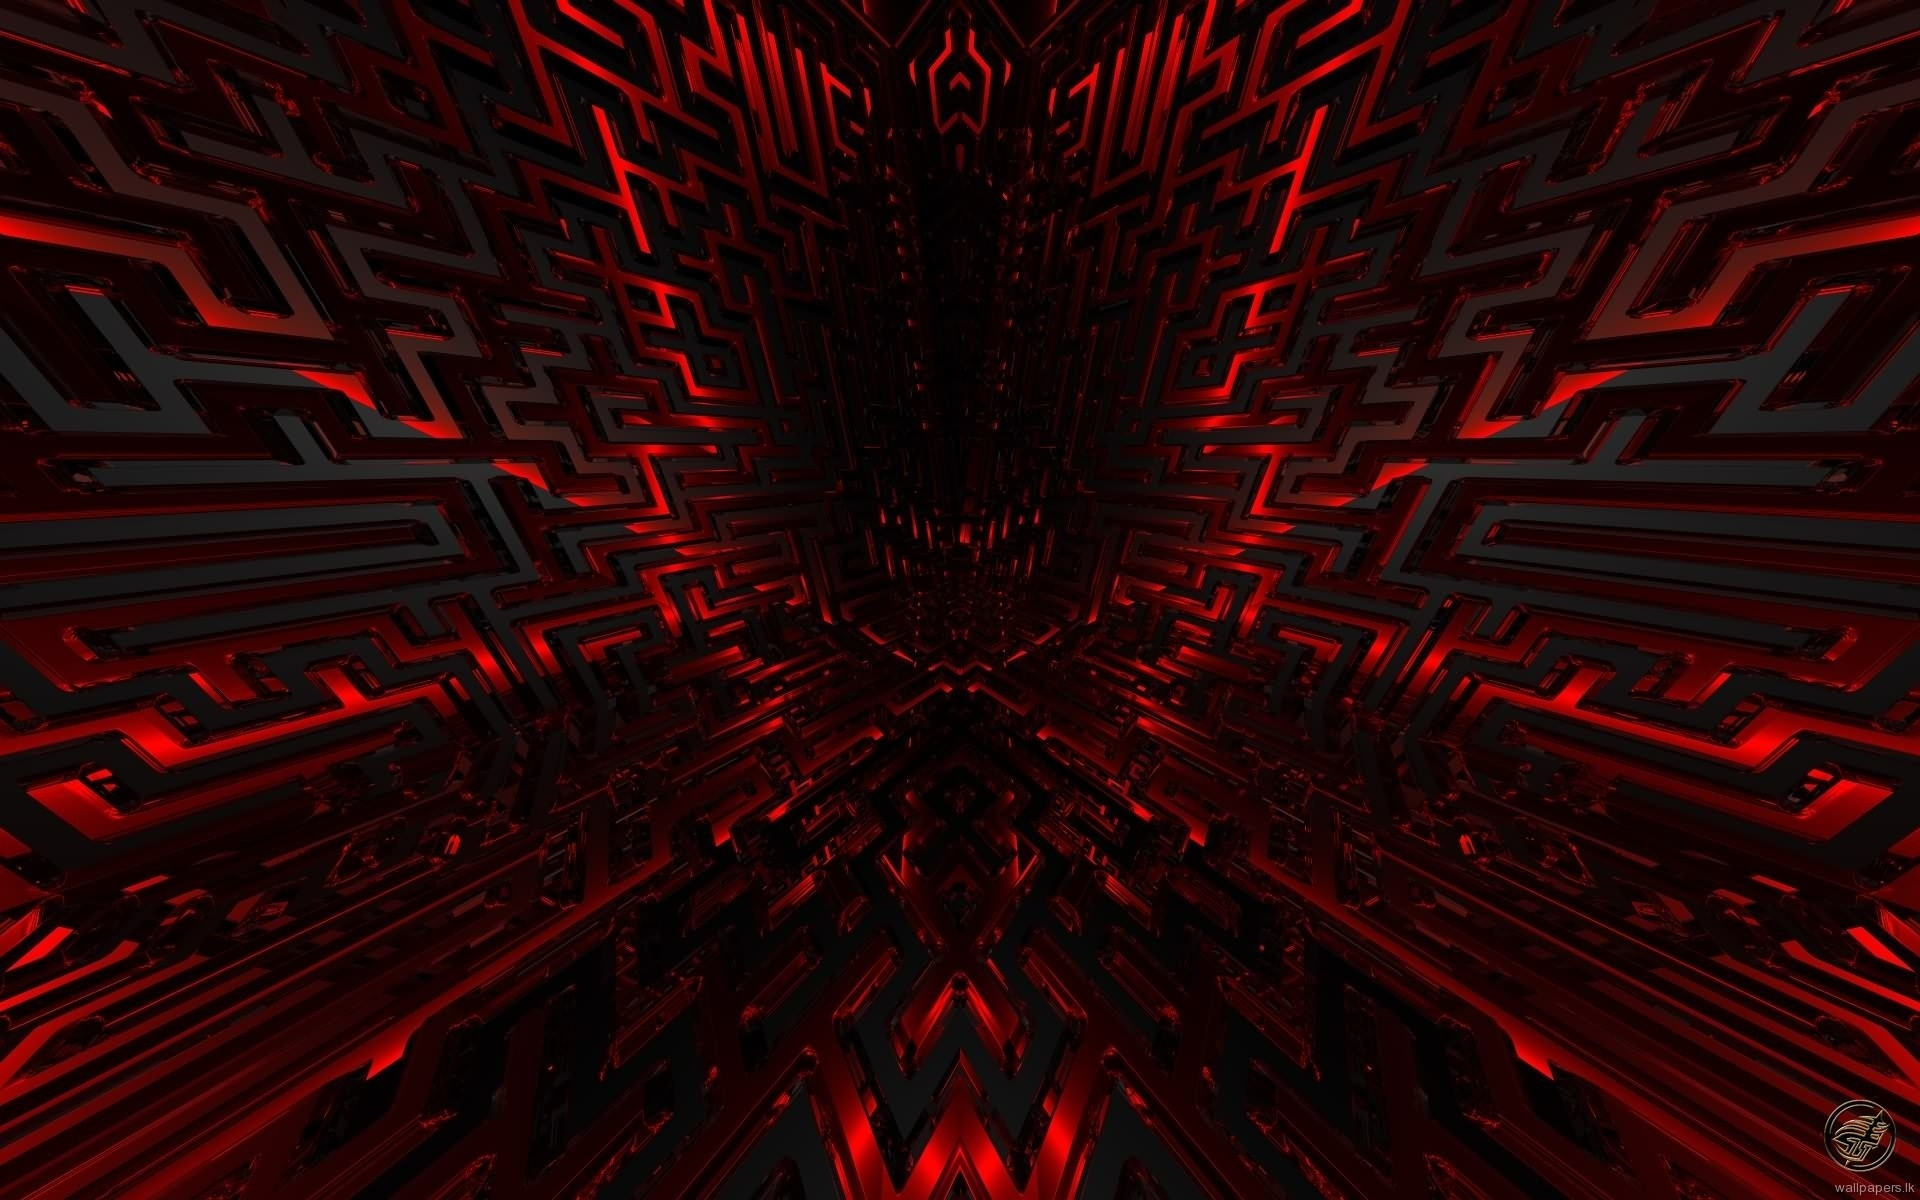 black-and-red-hd-wallpaper - wallpaper.wiki